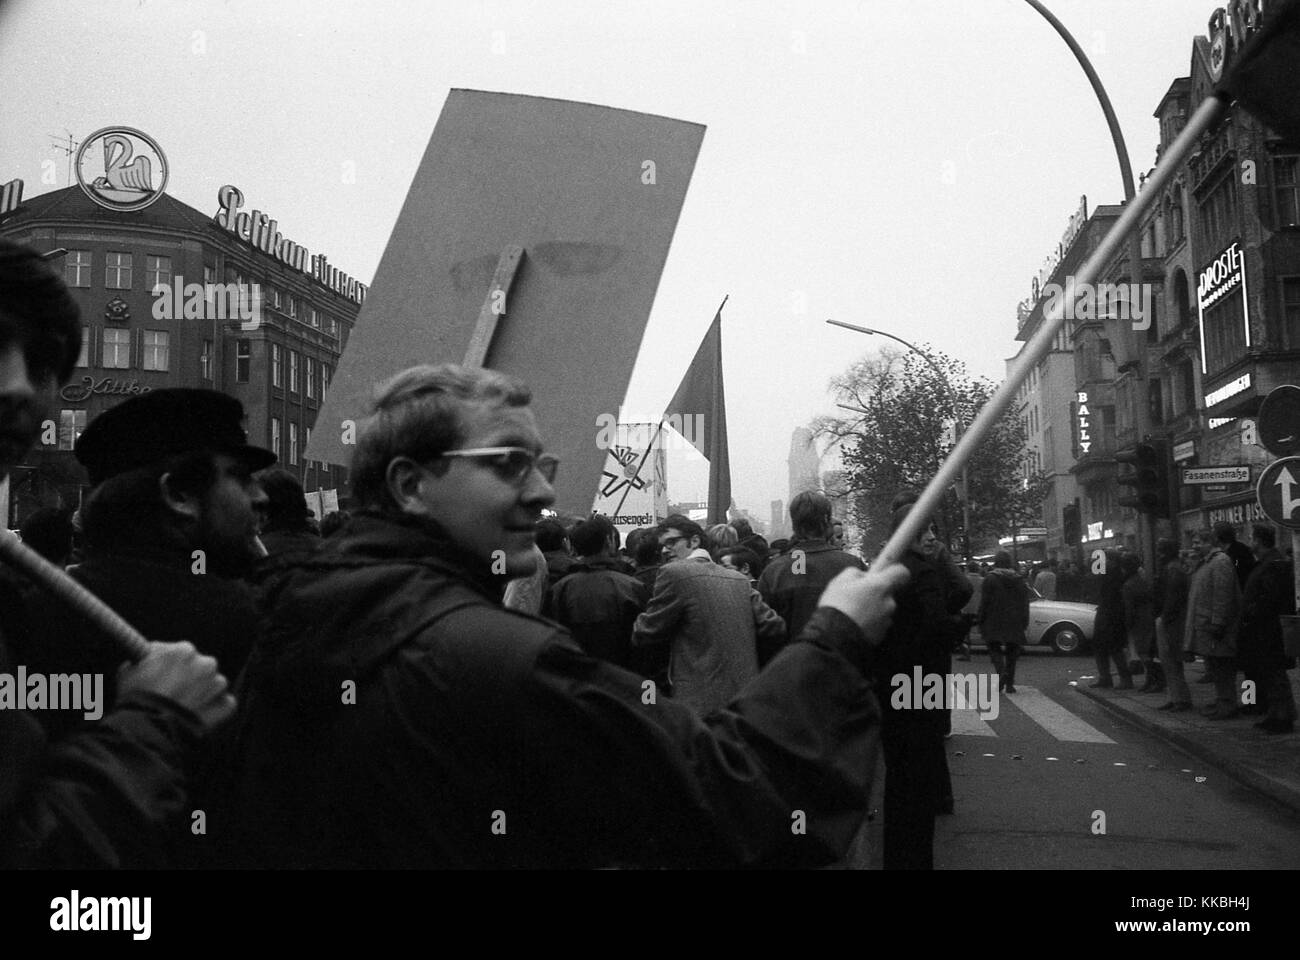 Philippe Gras / Le Pictorium -  Gathering in Berlin in 1968 -  1968  -  Germany / Berlin  -  The German demonstrations - Stock Image